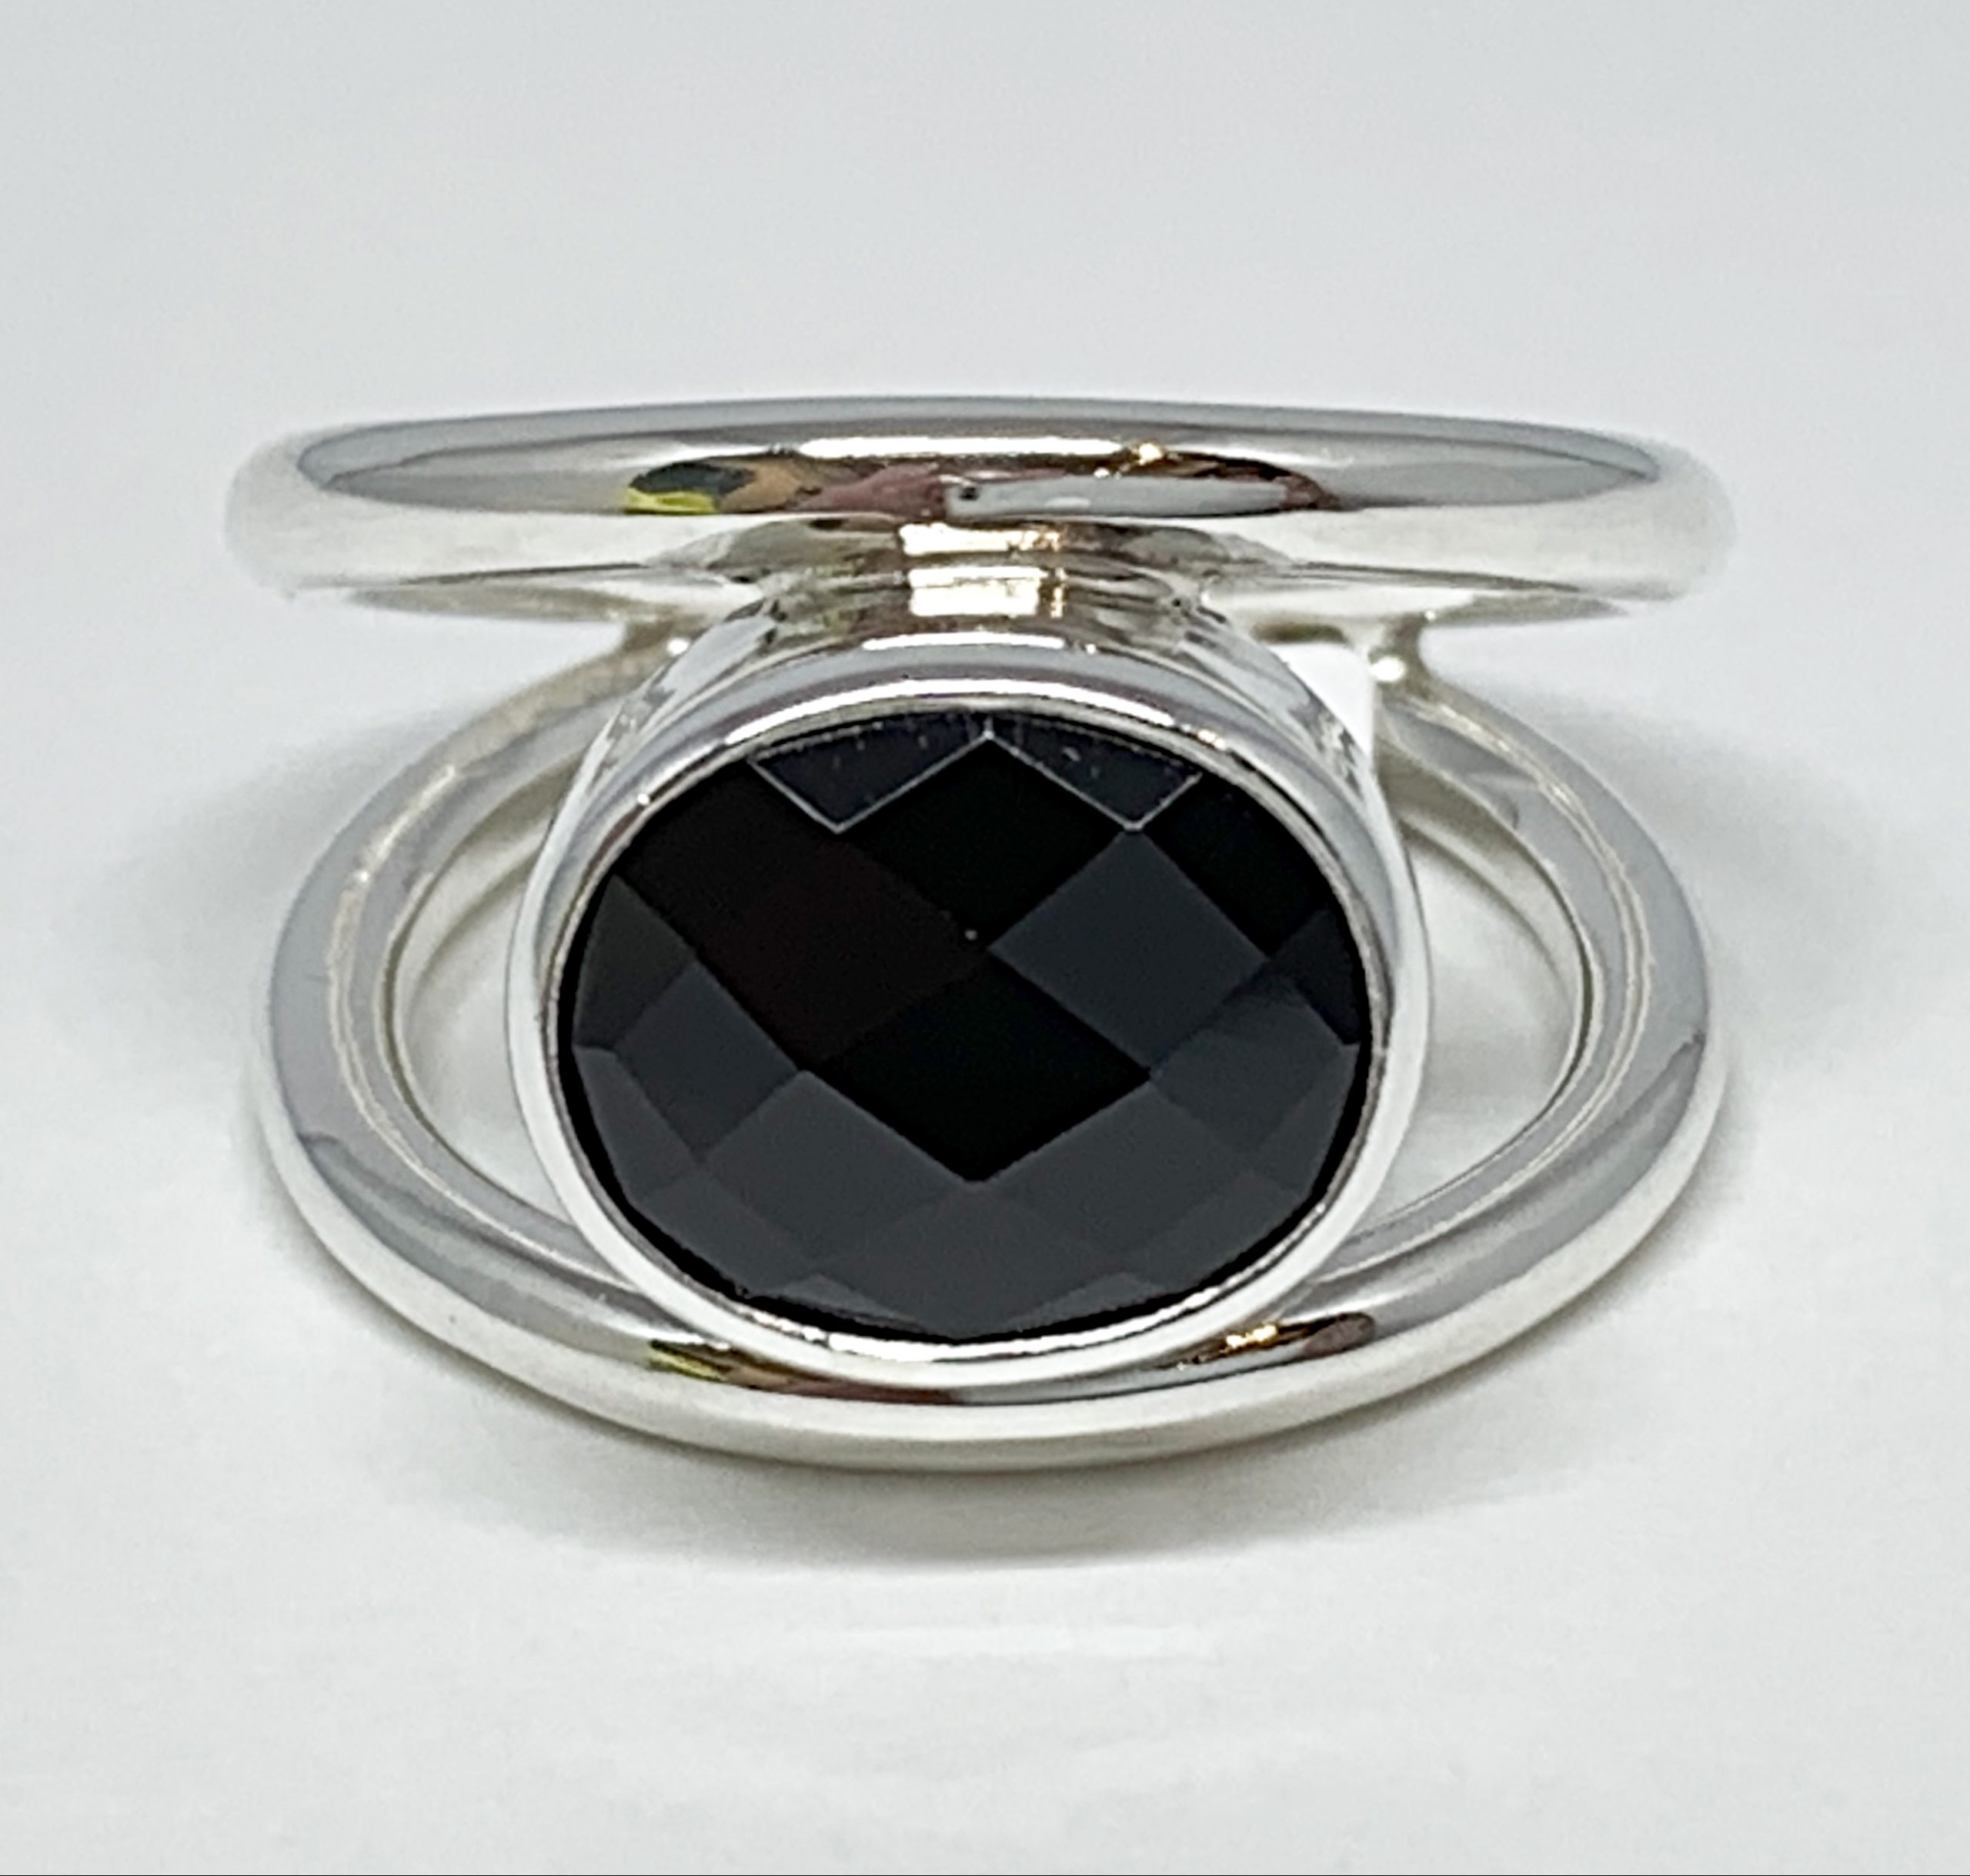 Sterling silver and 5.5 ct spinel ring by A&R Jewellery   Effusion Art Gallery + Cast Glass Studio, Invermere BC